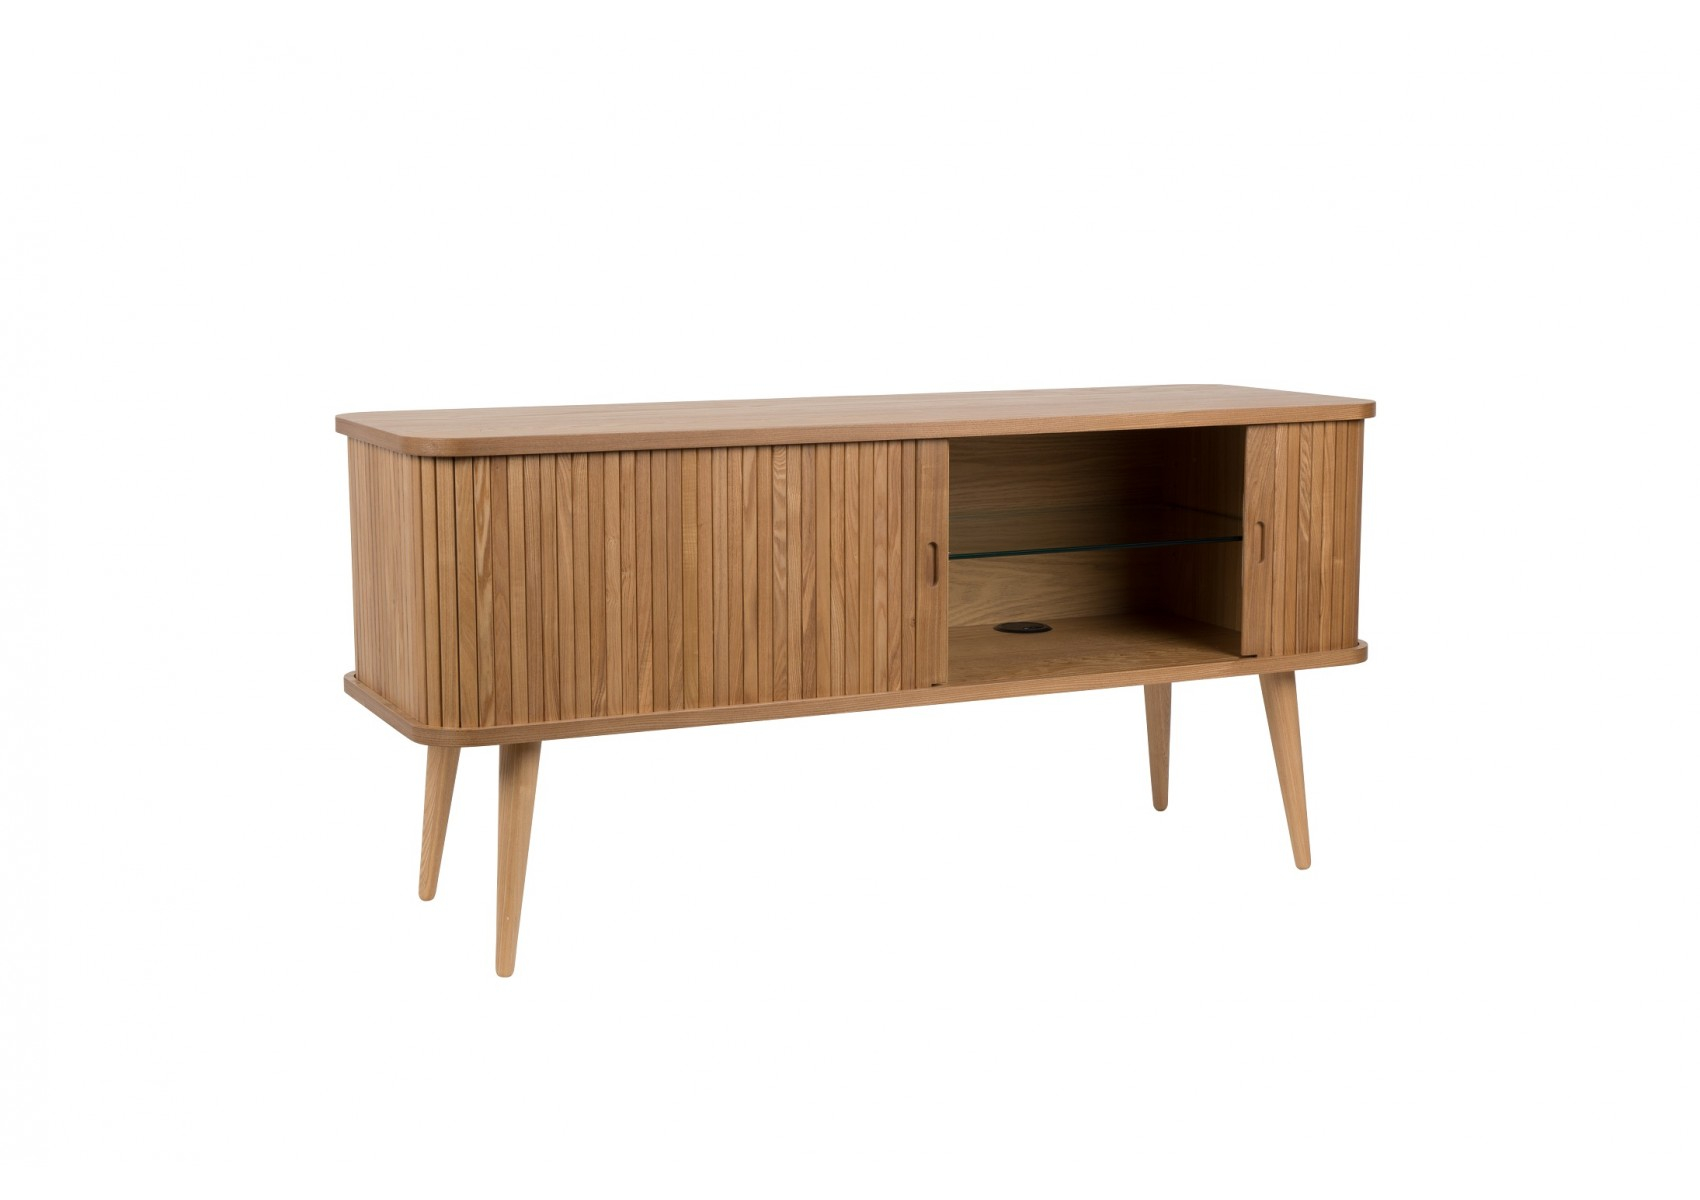 Buffet En Bois Au Design Scandinave Sideboard Barbier Par Zuiver # Petit Meuble Tv Scandinave